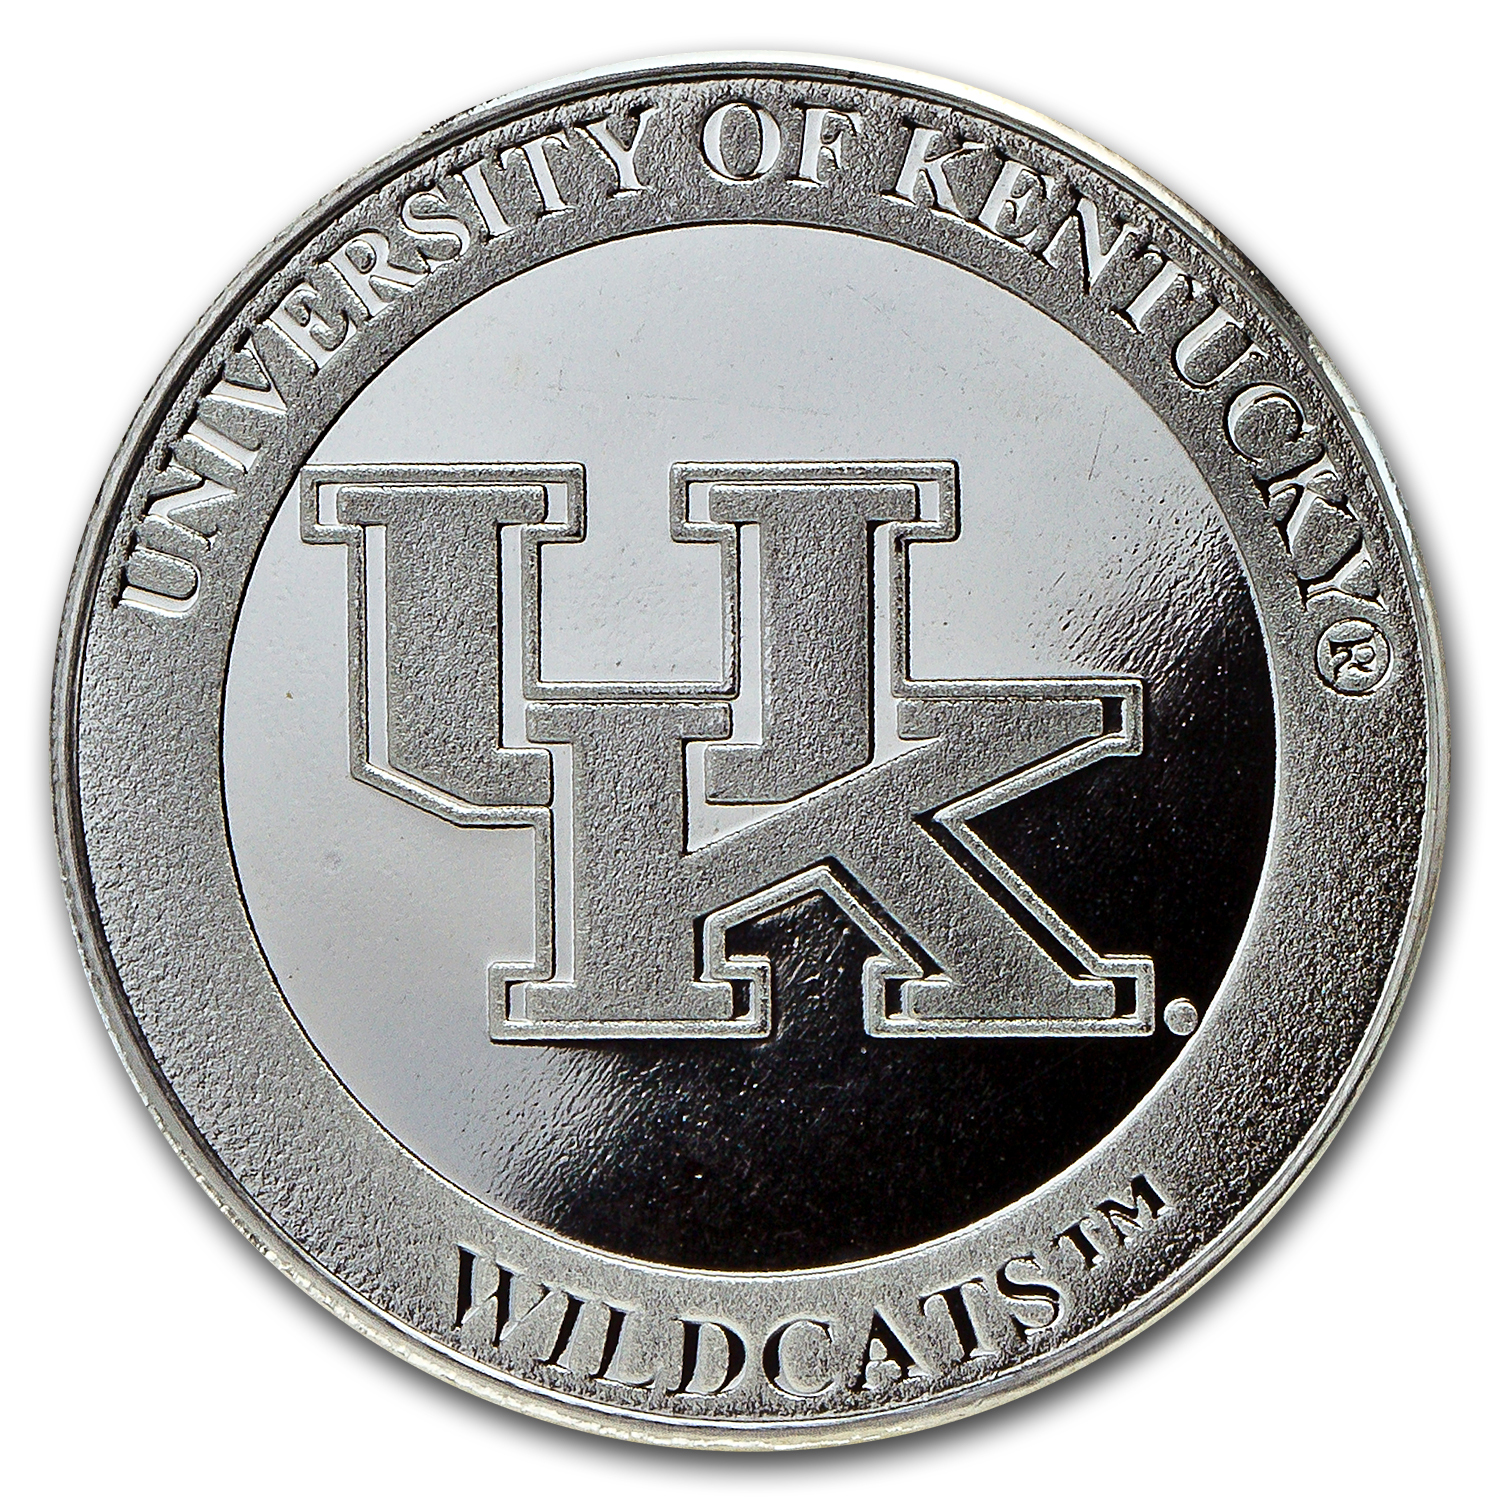 1 oz Silver Round - University of Kentucky